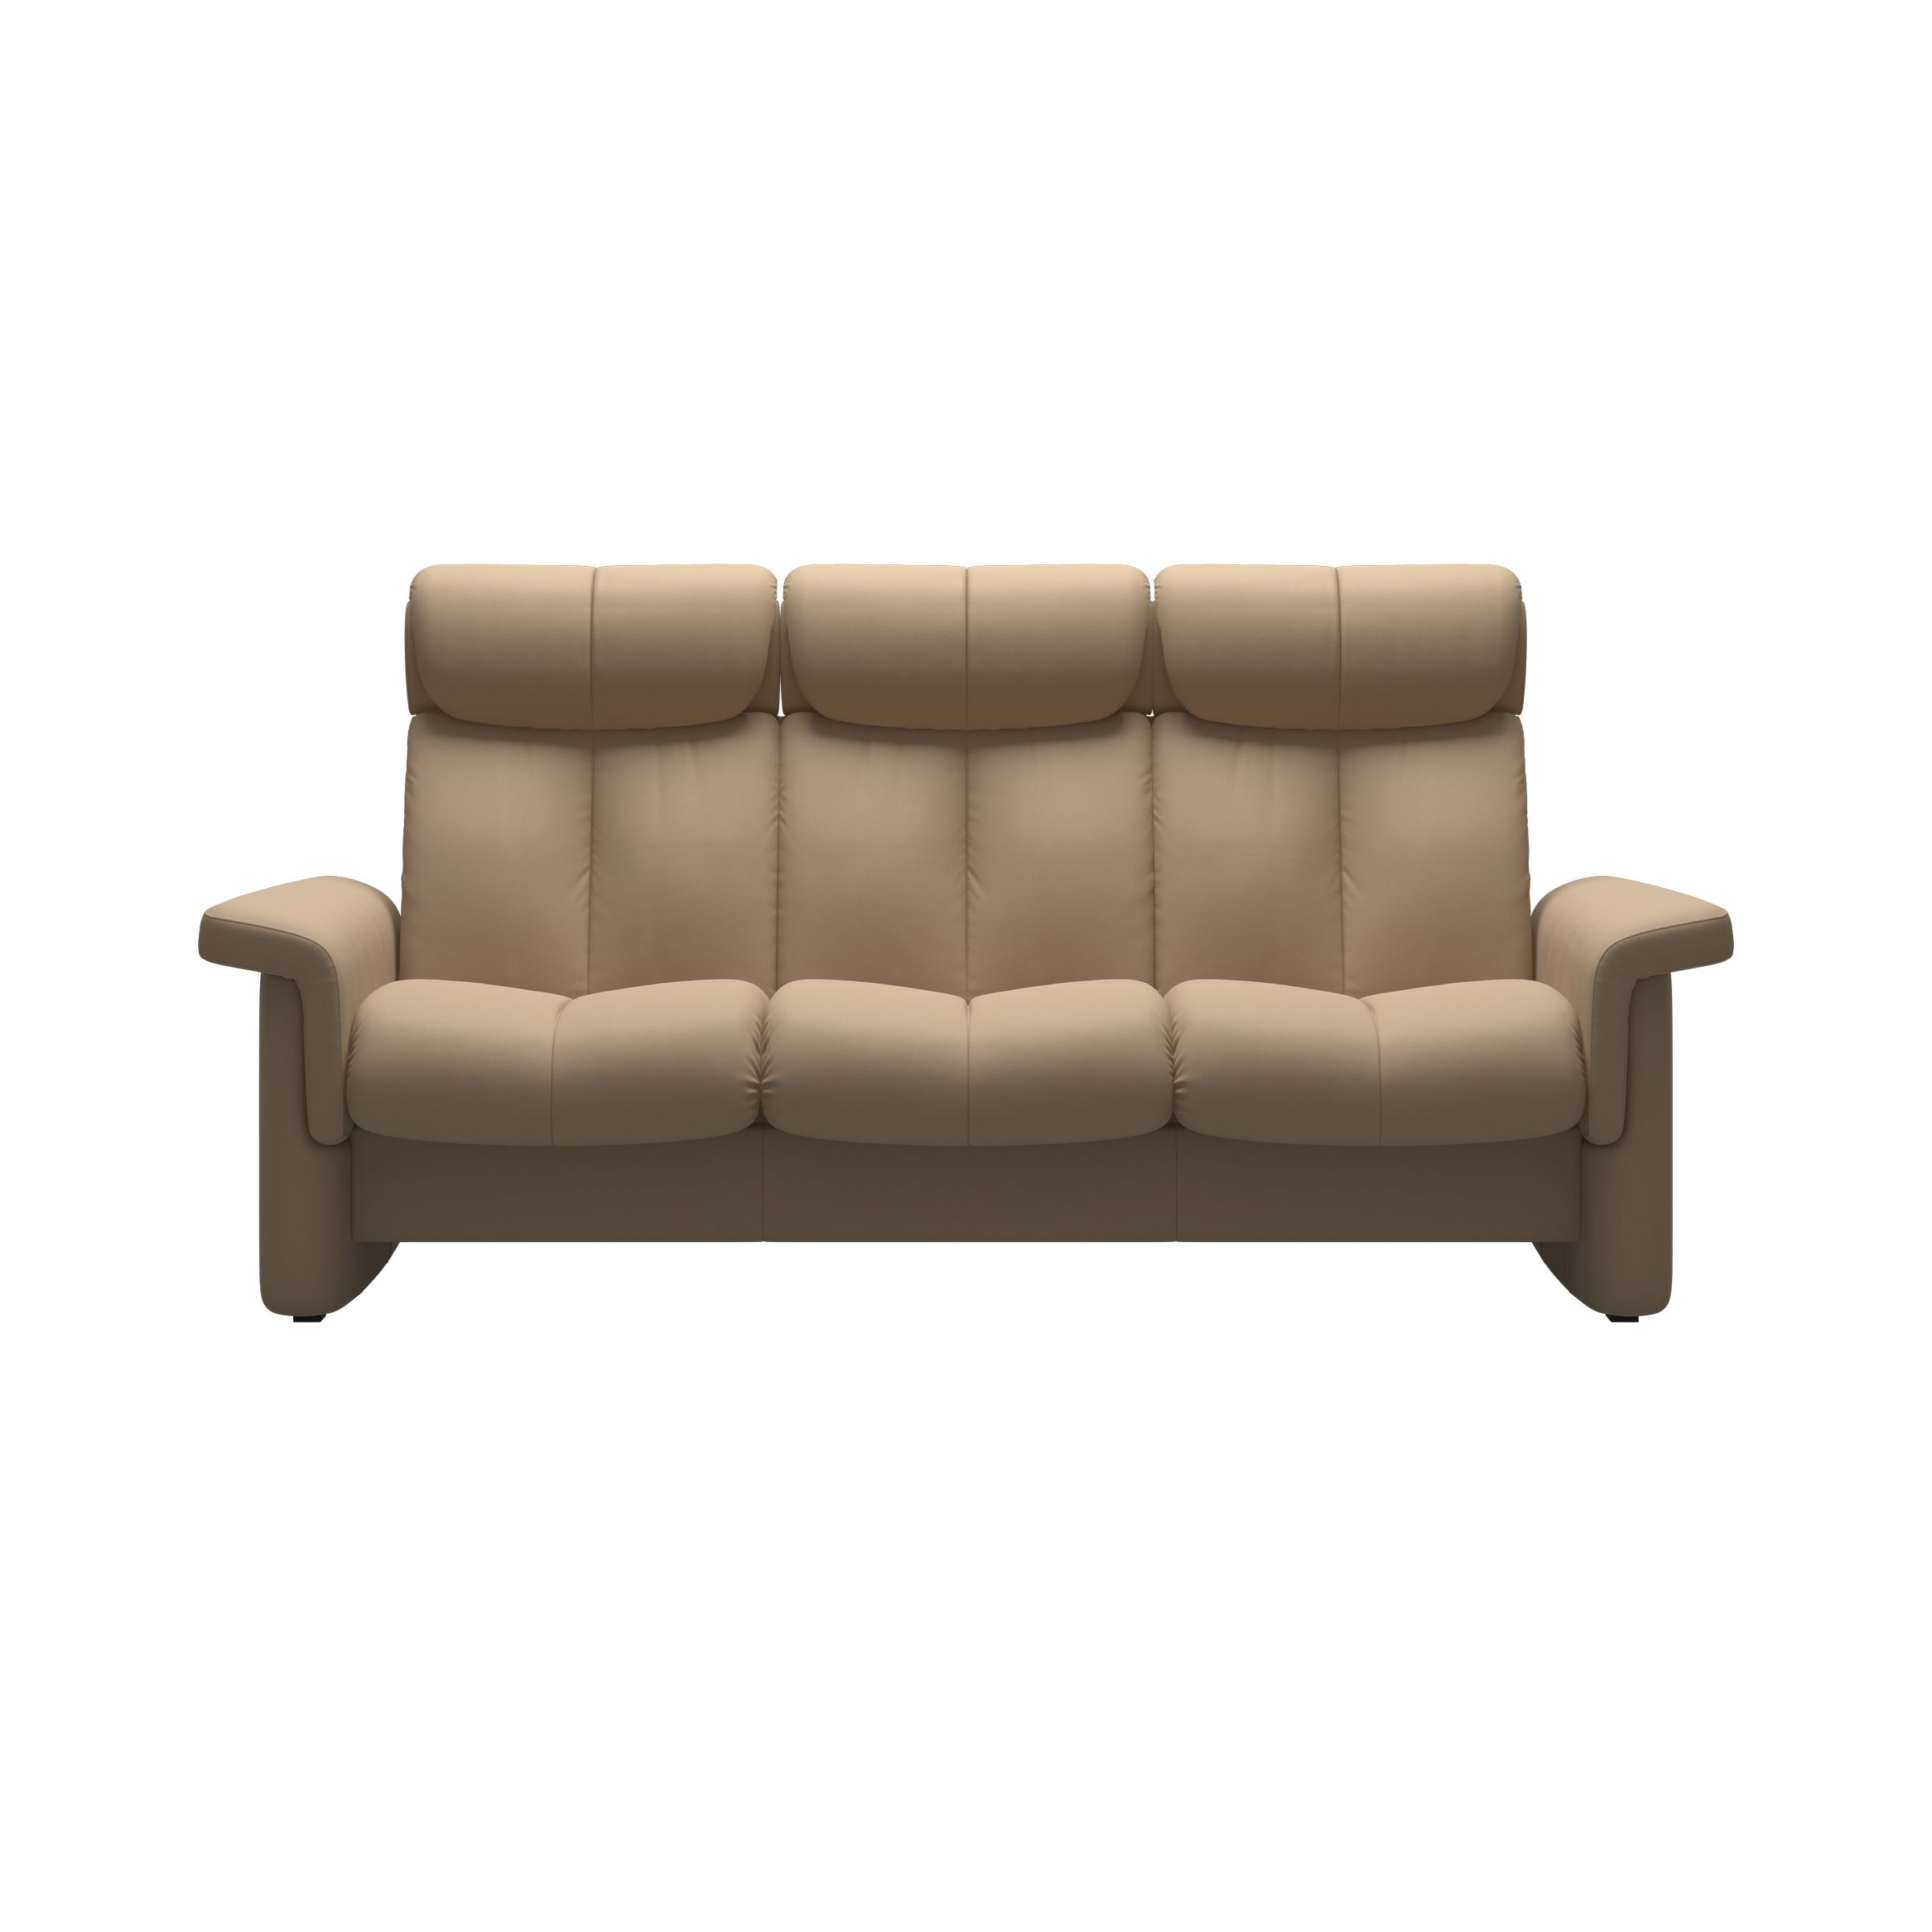 Stressless Wohnlandschaft Stressless Legend High Back Sofas